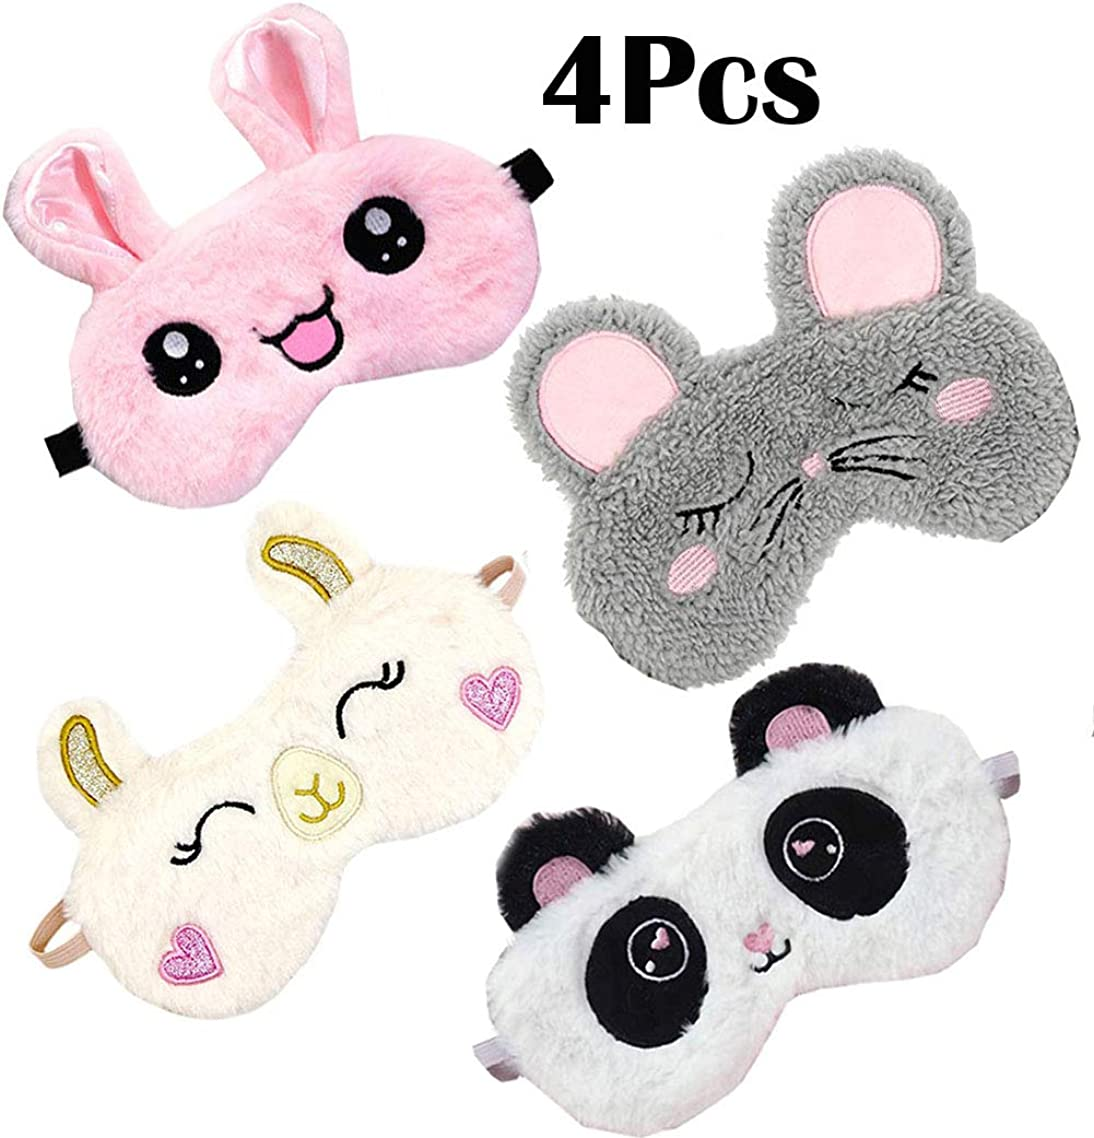 4 Pack Cute Animal Sleep Mask for Girls Soft Plush Blindfold Cute Rabbit Panda Alpaca Mouse Sleeping Masks Eye Cover Eyeshade for Kids Teens Girls Women Plane Travel Nap Night Sleeping